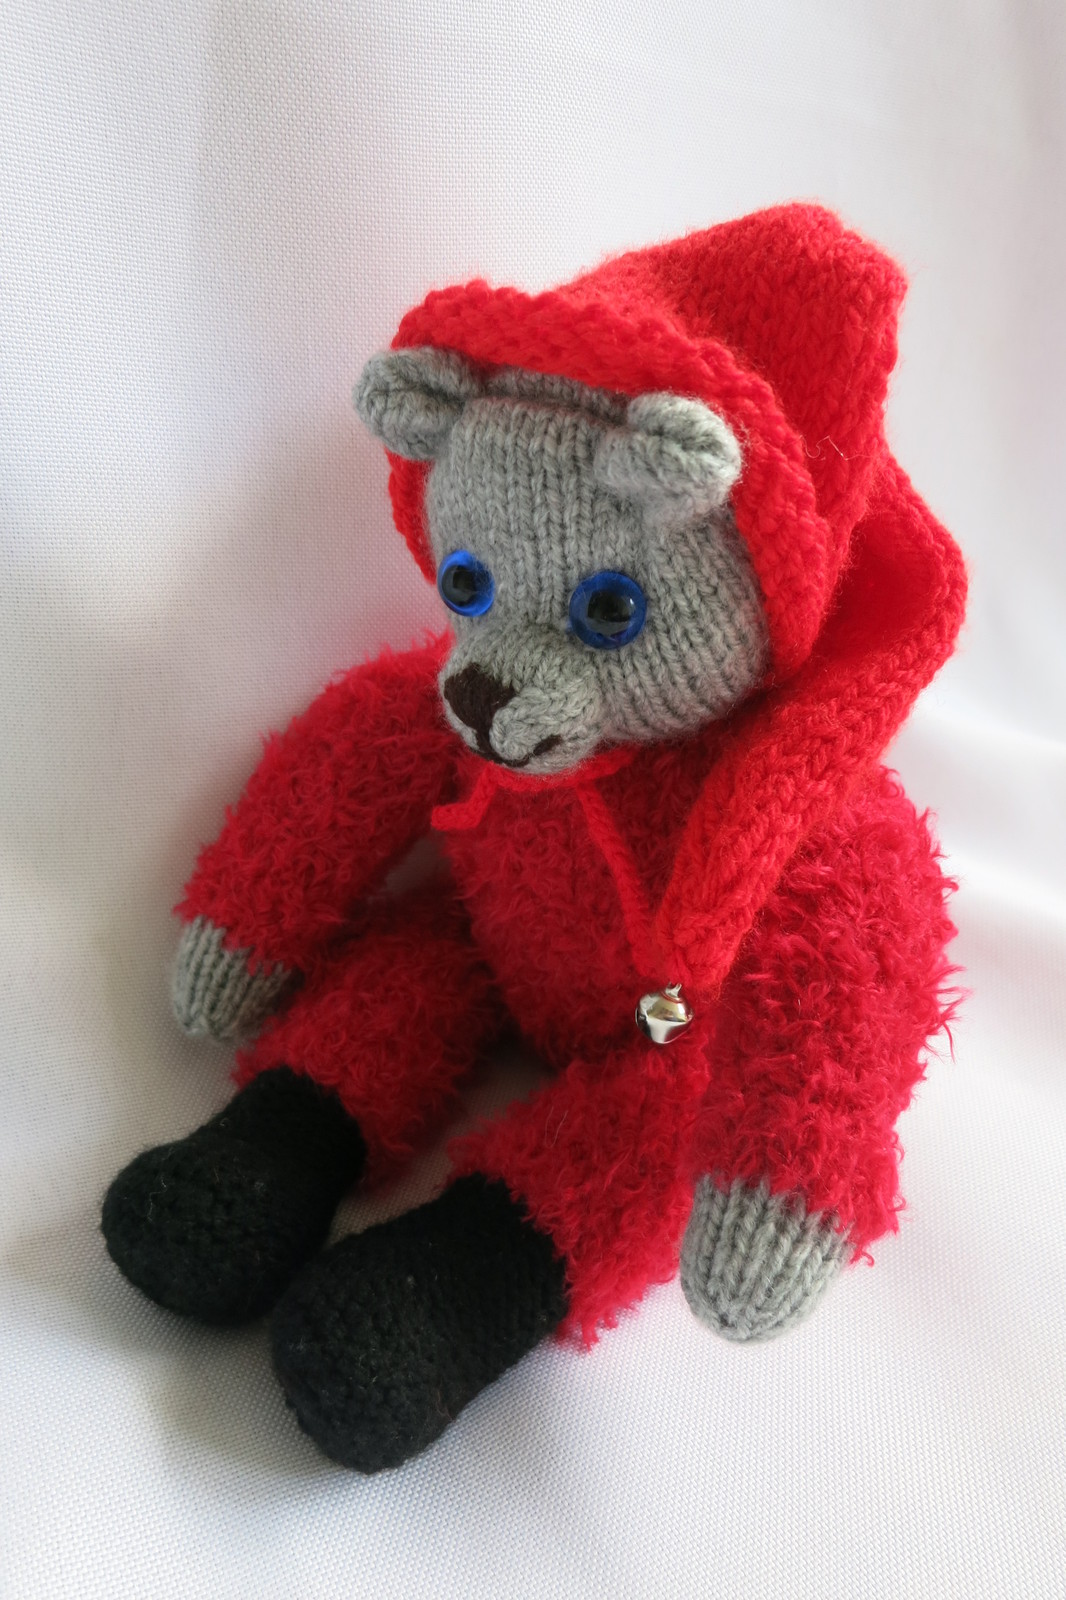 Christmas Teddy Bear - handmade stuffed toy - Christmas gift - nursery decor